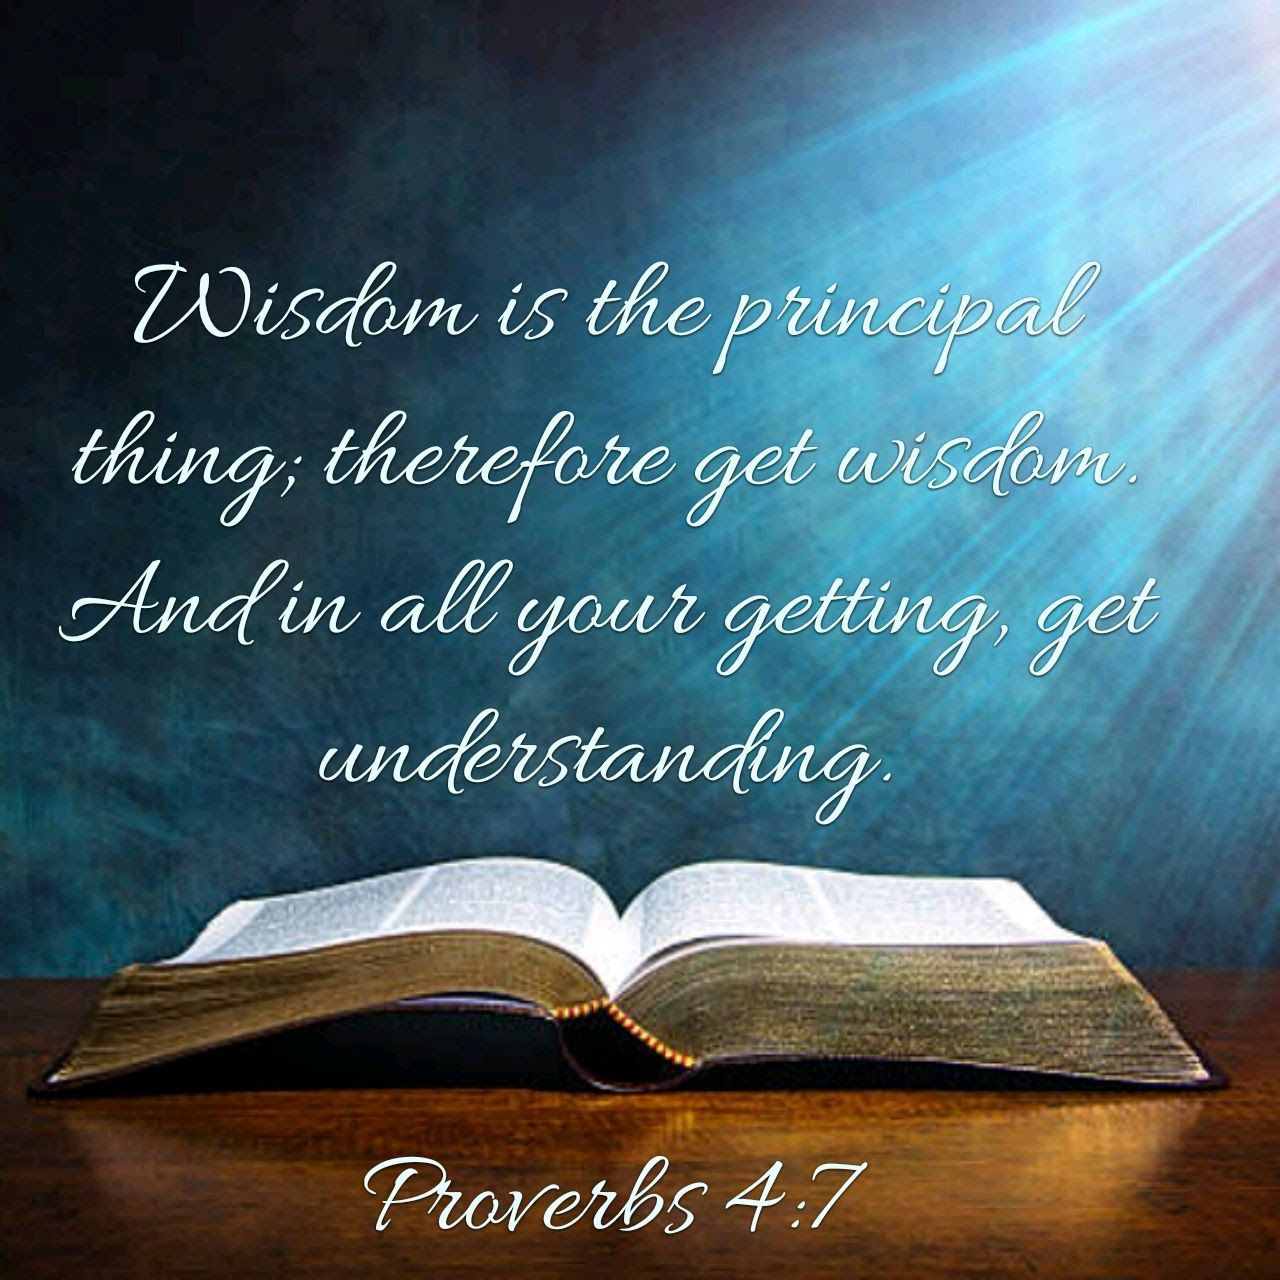 Proverbs 4:7 | Proverbs 4, Proverbs 4 7, Inspirational words